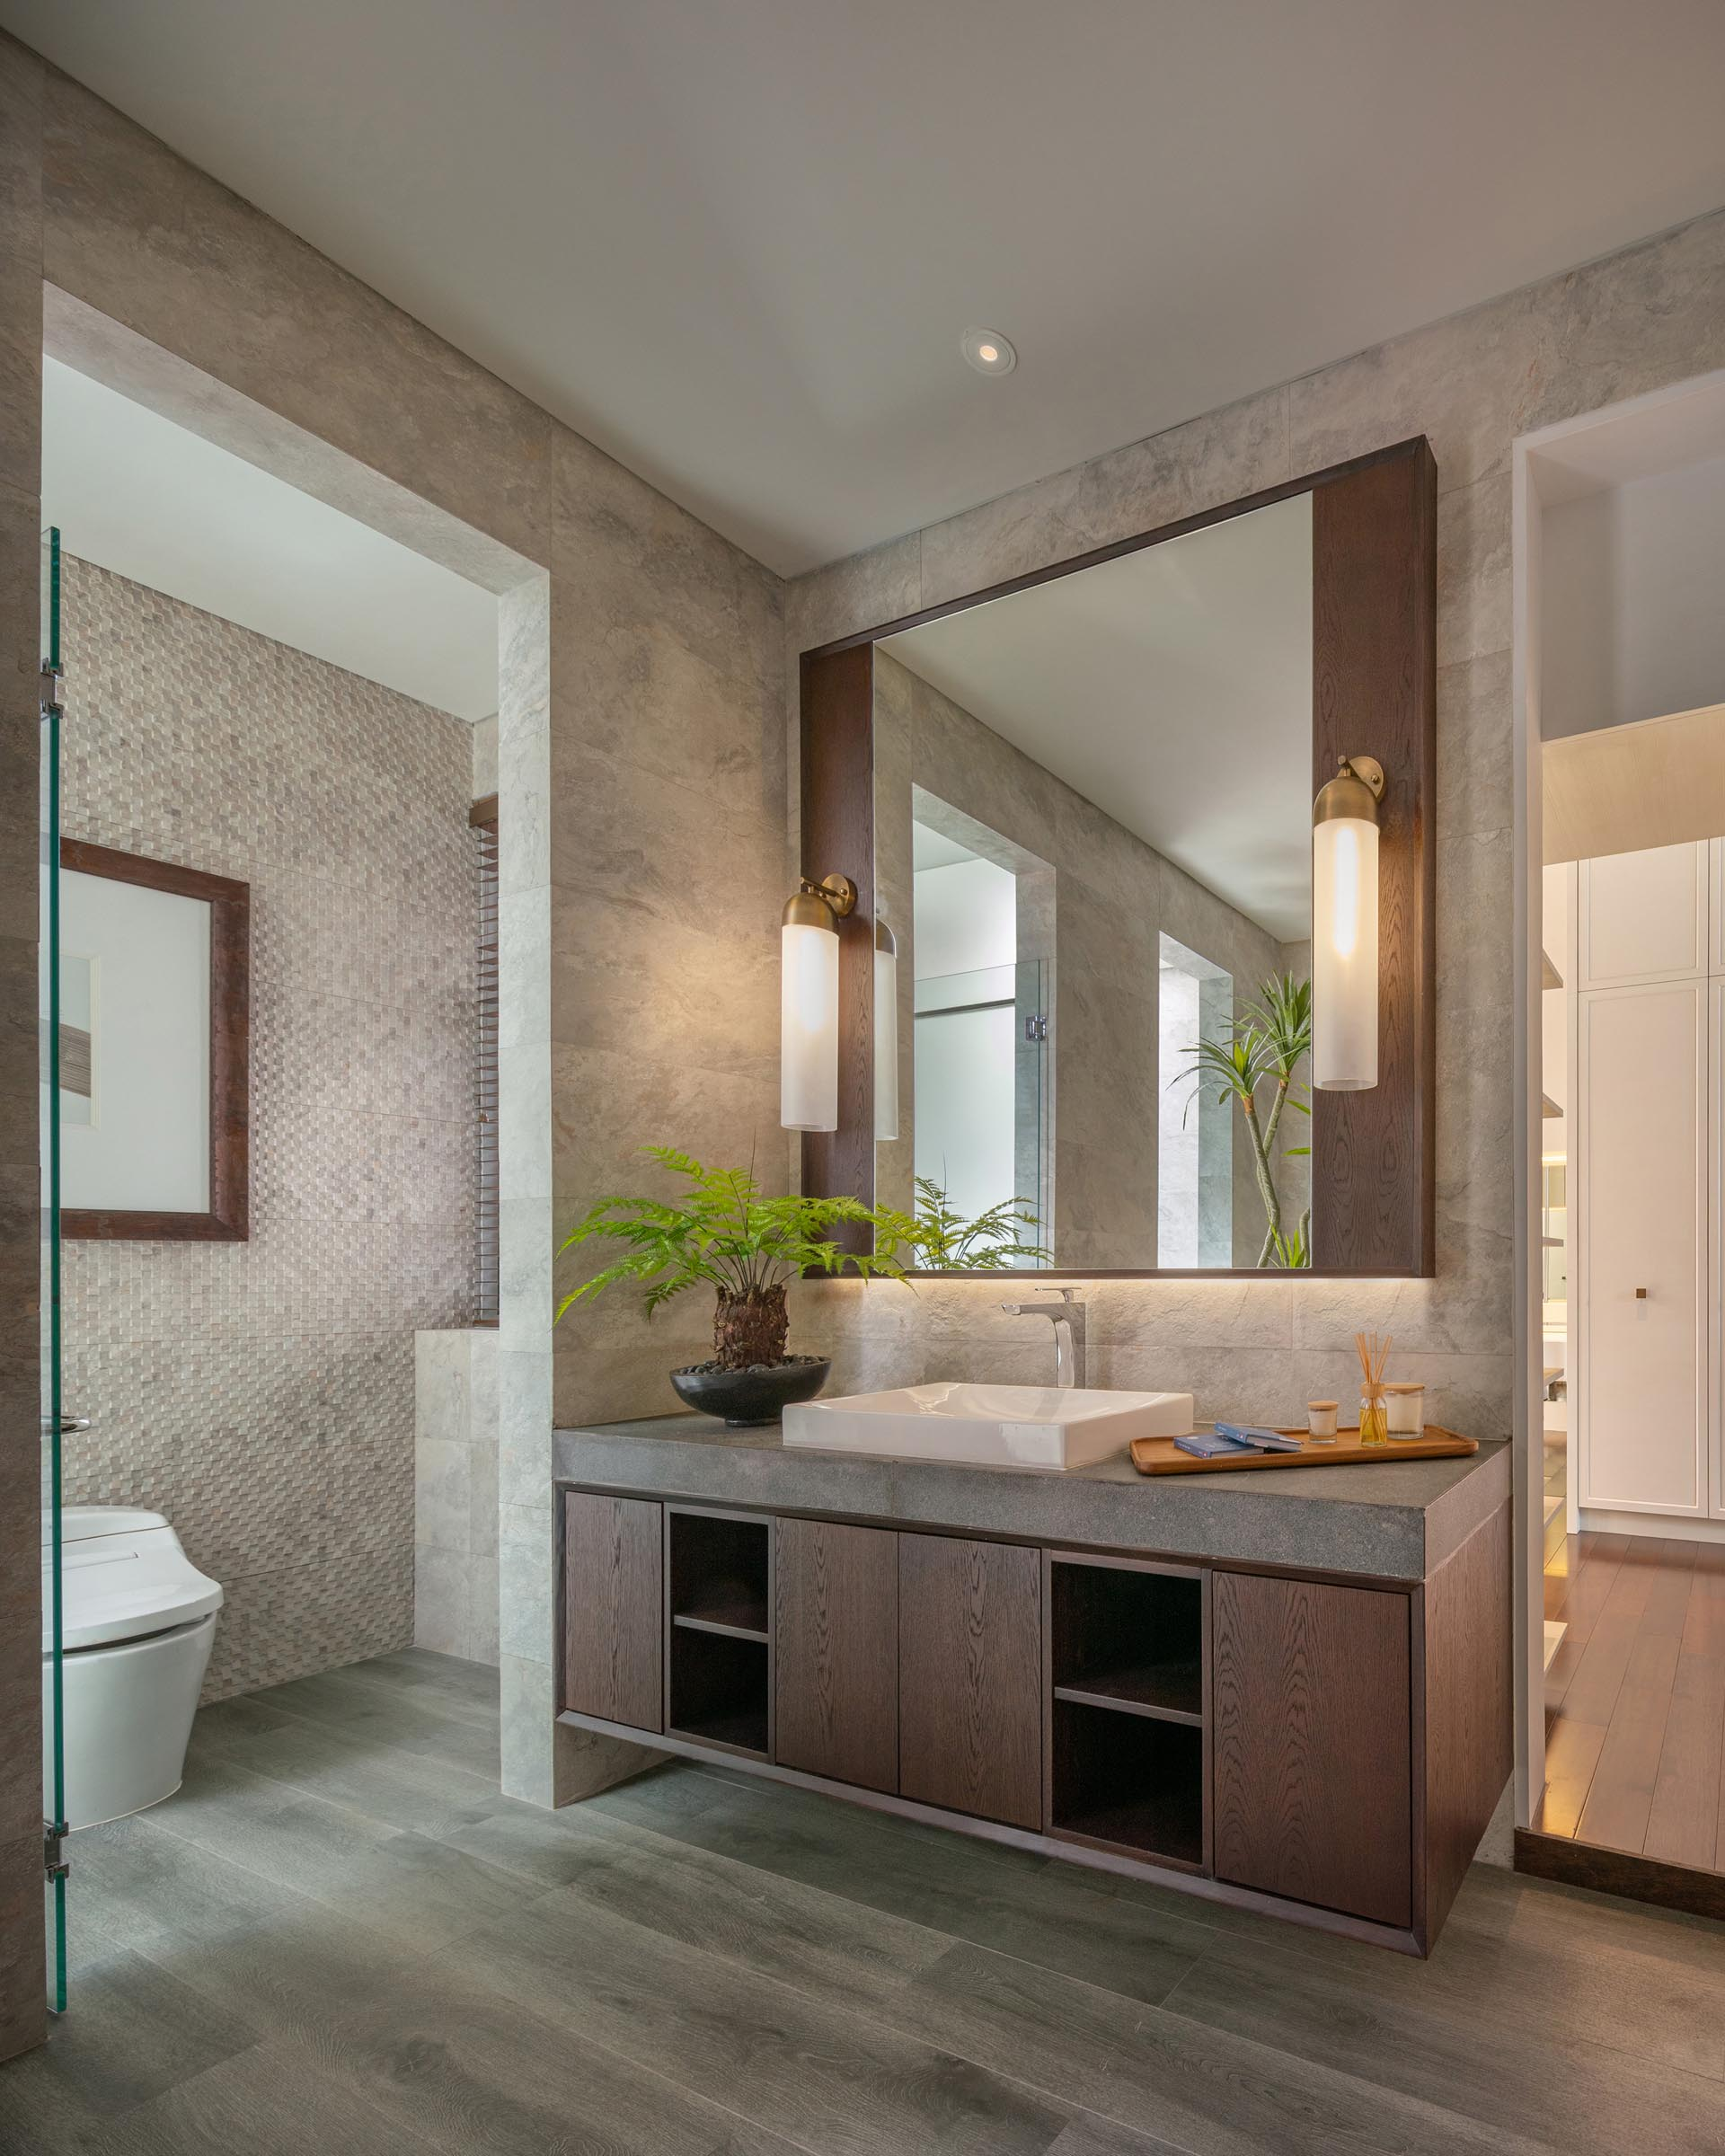 In the ensuite bathroom there's a floating wood vanity with a thick concrete countertop and a freestanding bathtub. Off to the side are separate rooms for the toilet and shower.